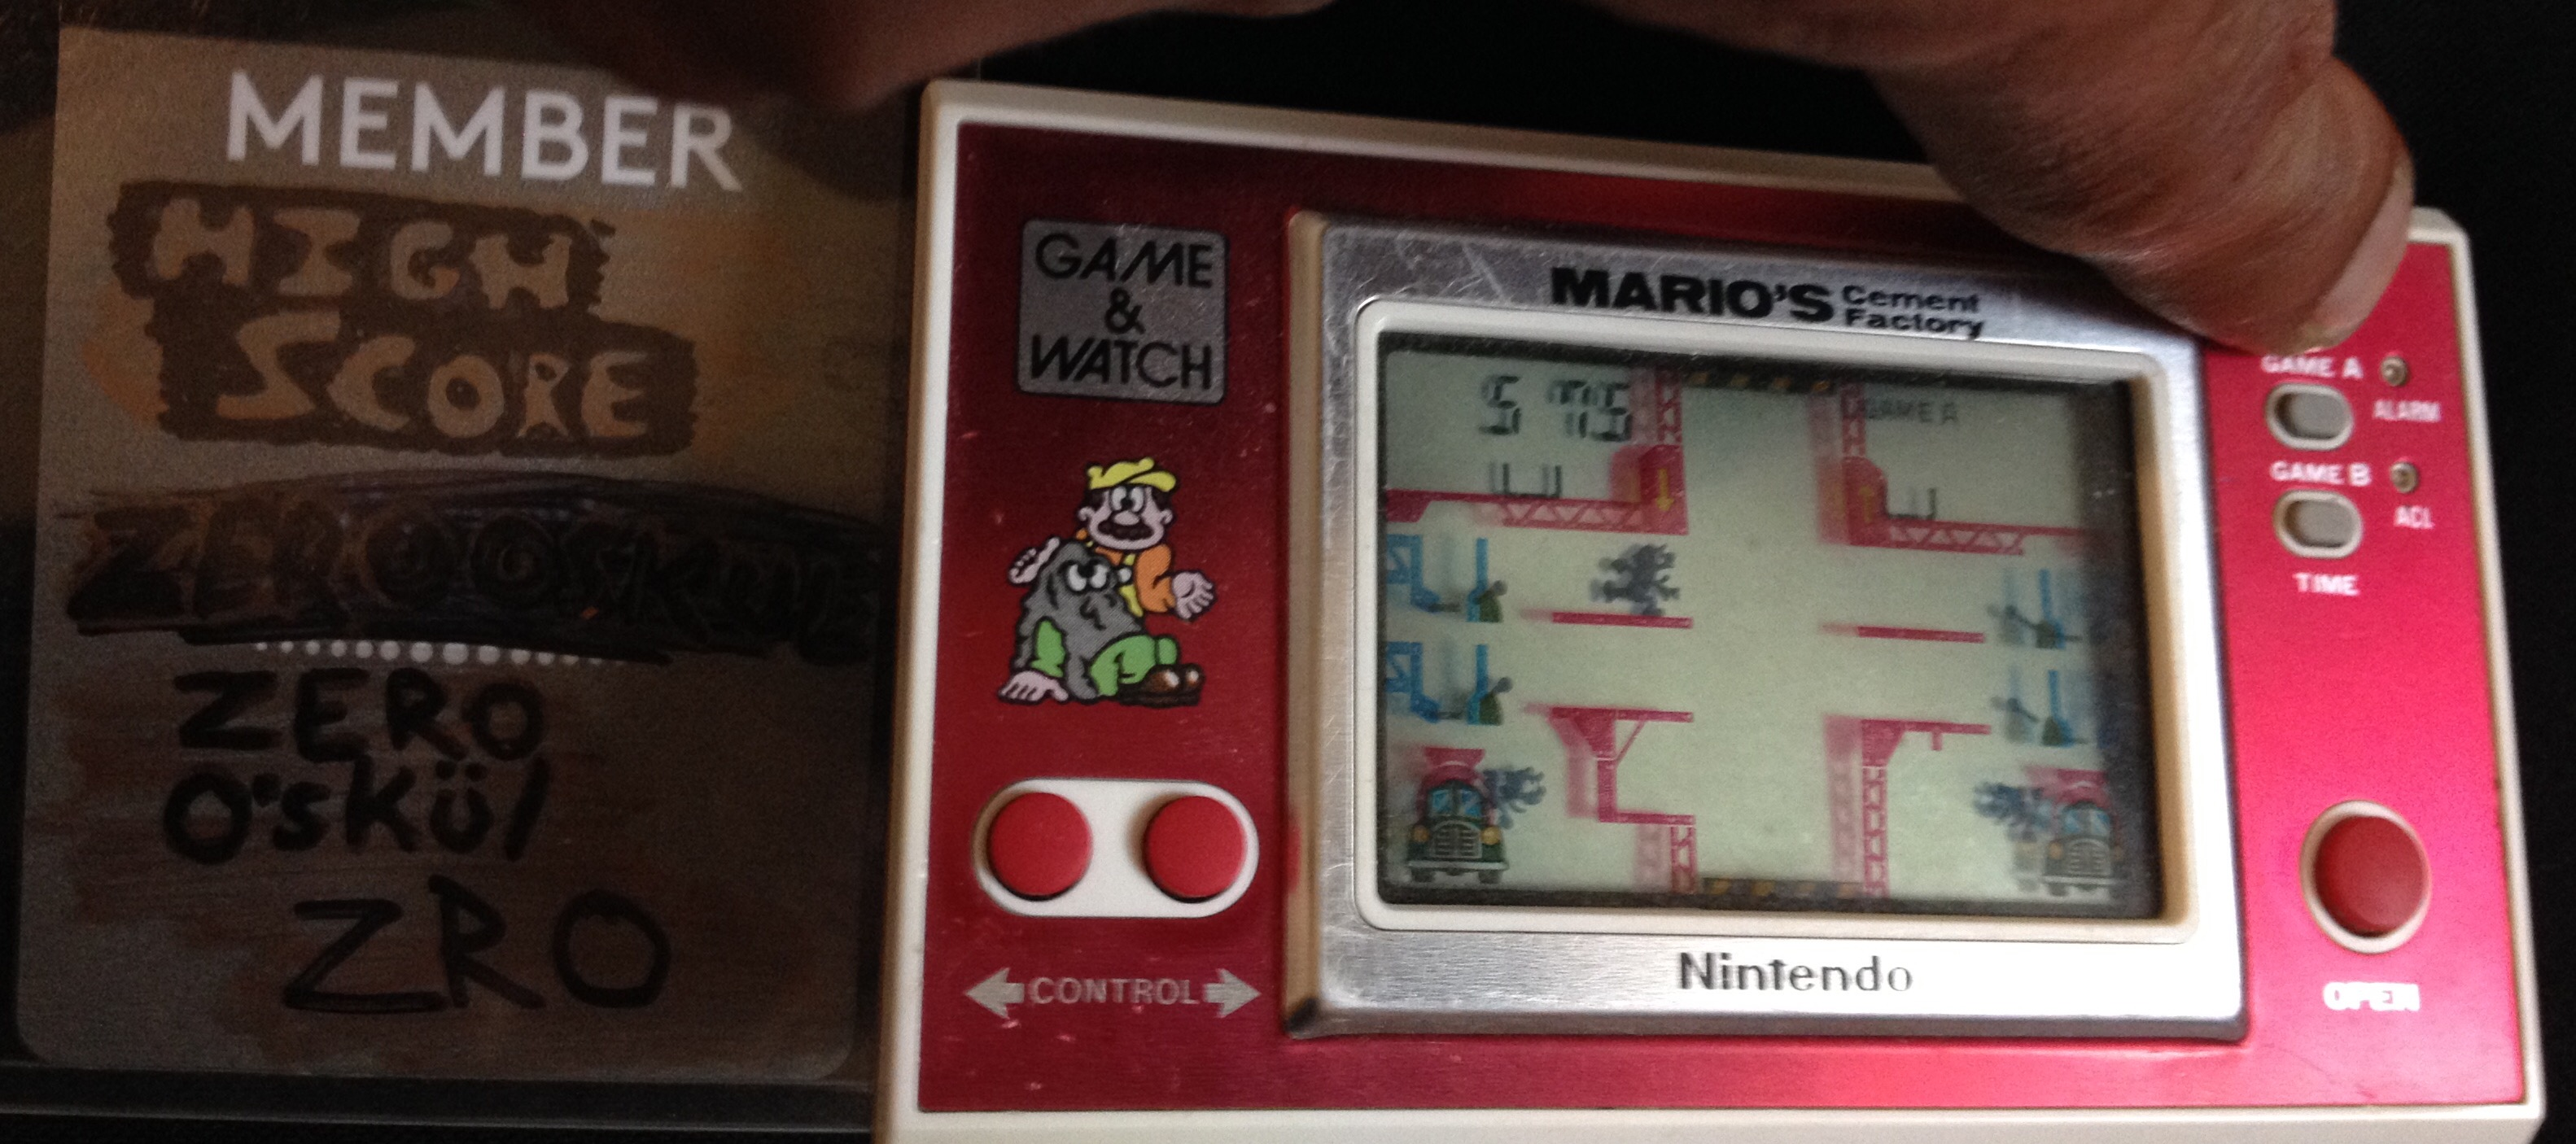 Game & Watch: Mario